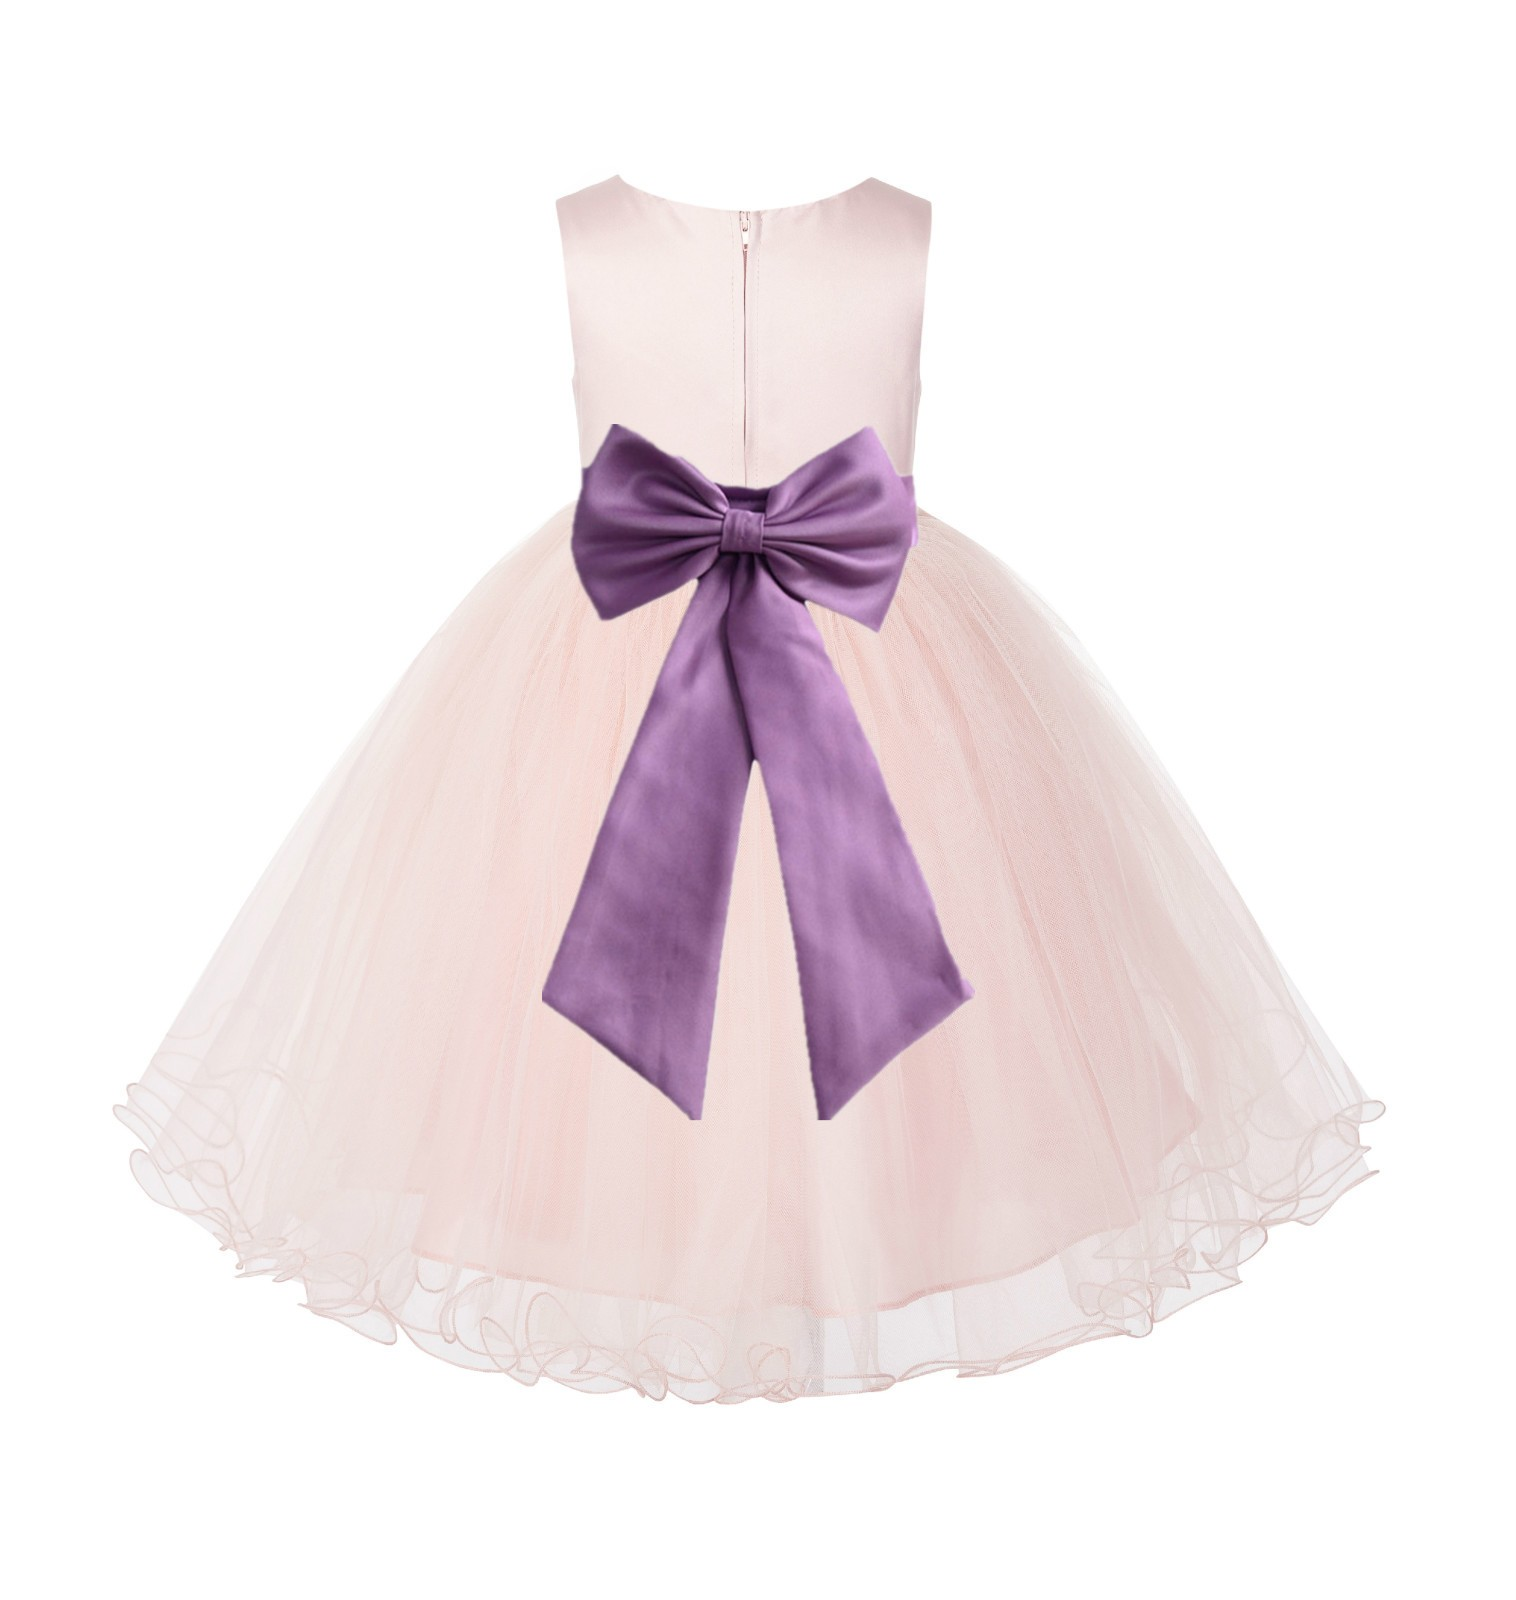 Blush PInk / Wisteria Tulle Rattail Edge Flower Girl Dress Wedding Bridesmaid 829T